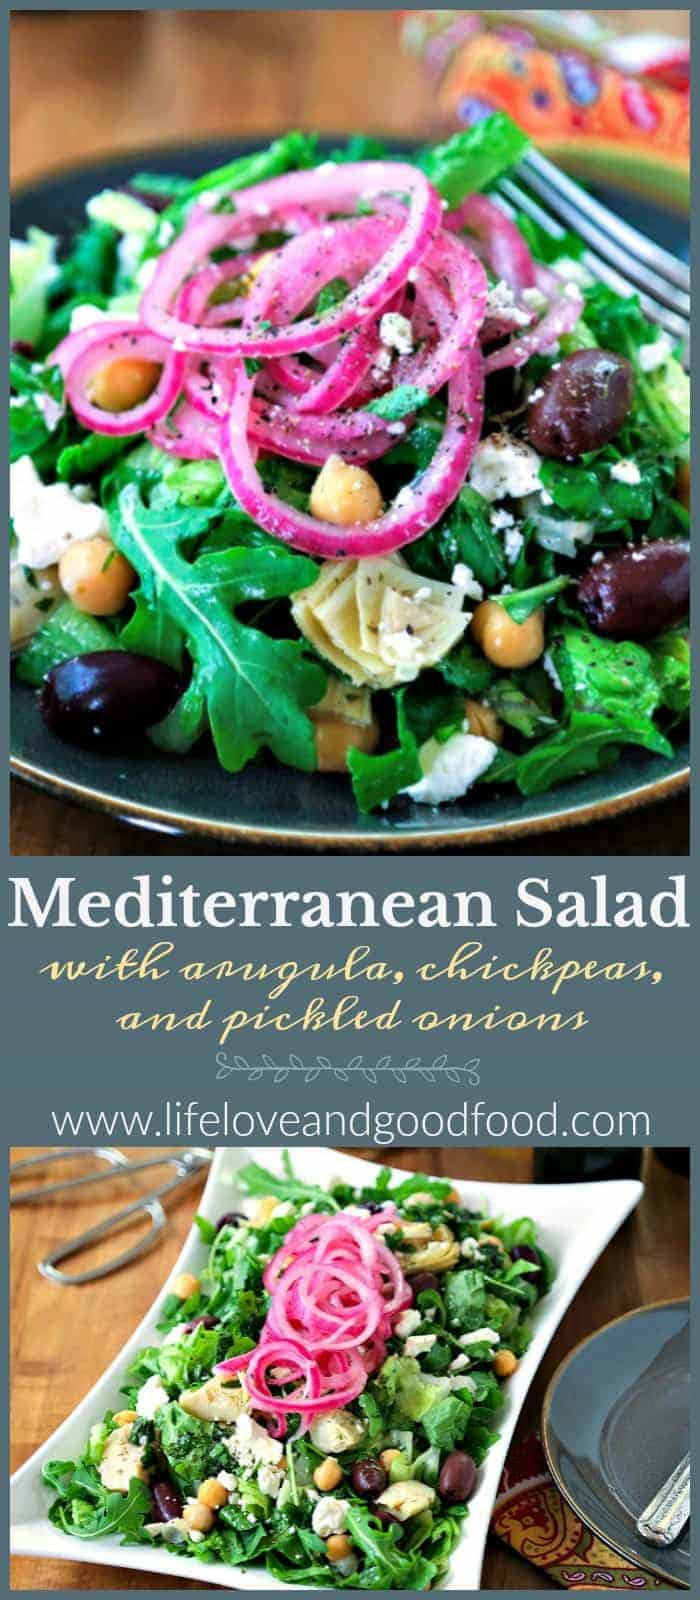 Greek-inspired chopped salad featuring arugula, chickpeas, and pickled red onions with a fresh herb vinaigrette. #salad #greeksalad #pickledredonions